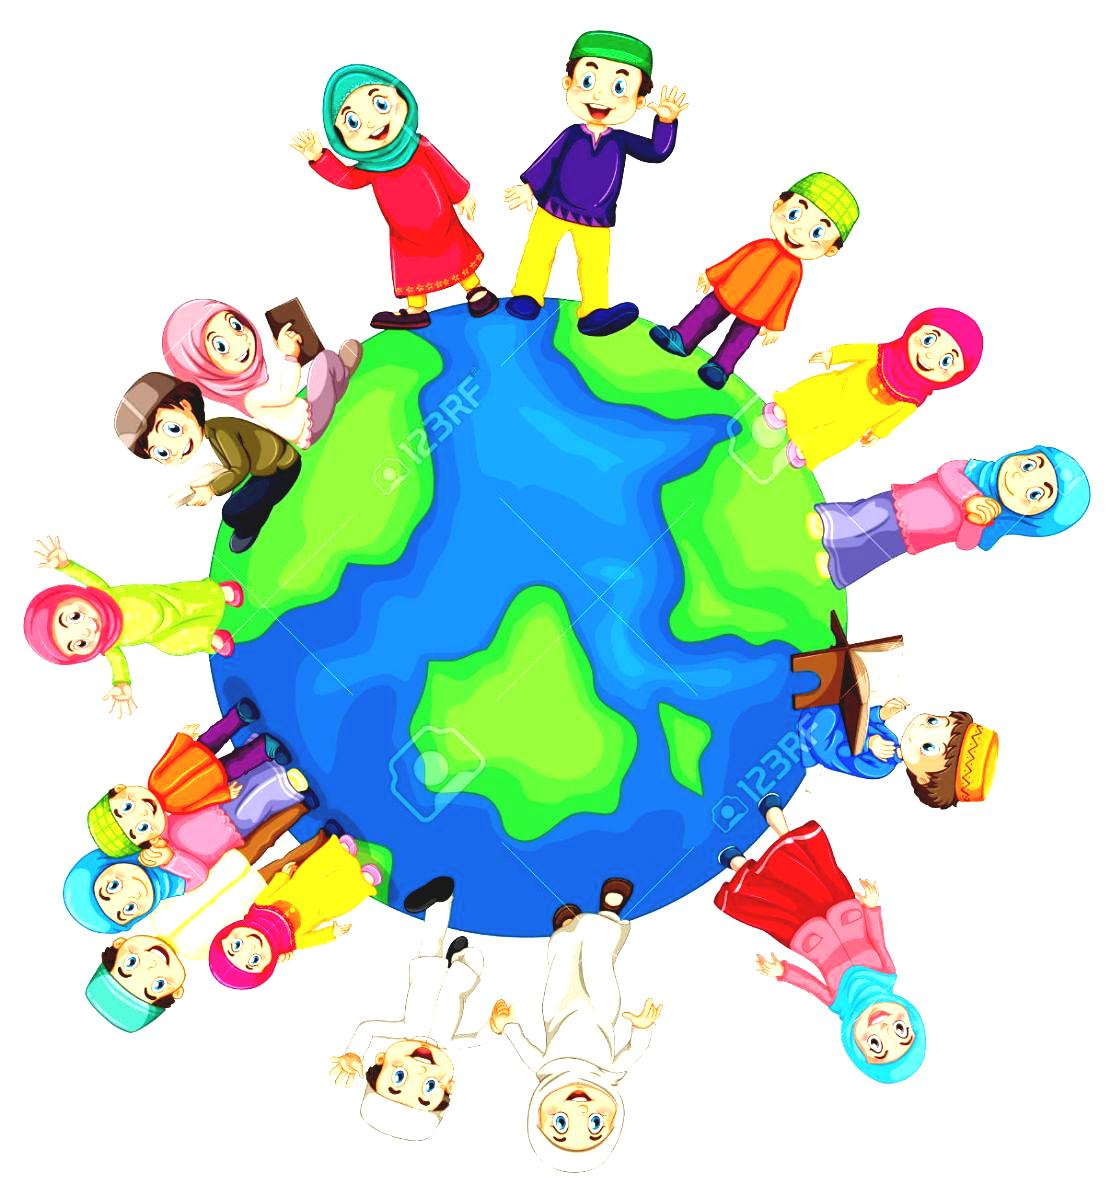 hight resolution of world religion map for kids stock illustrations clipart and